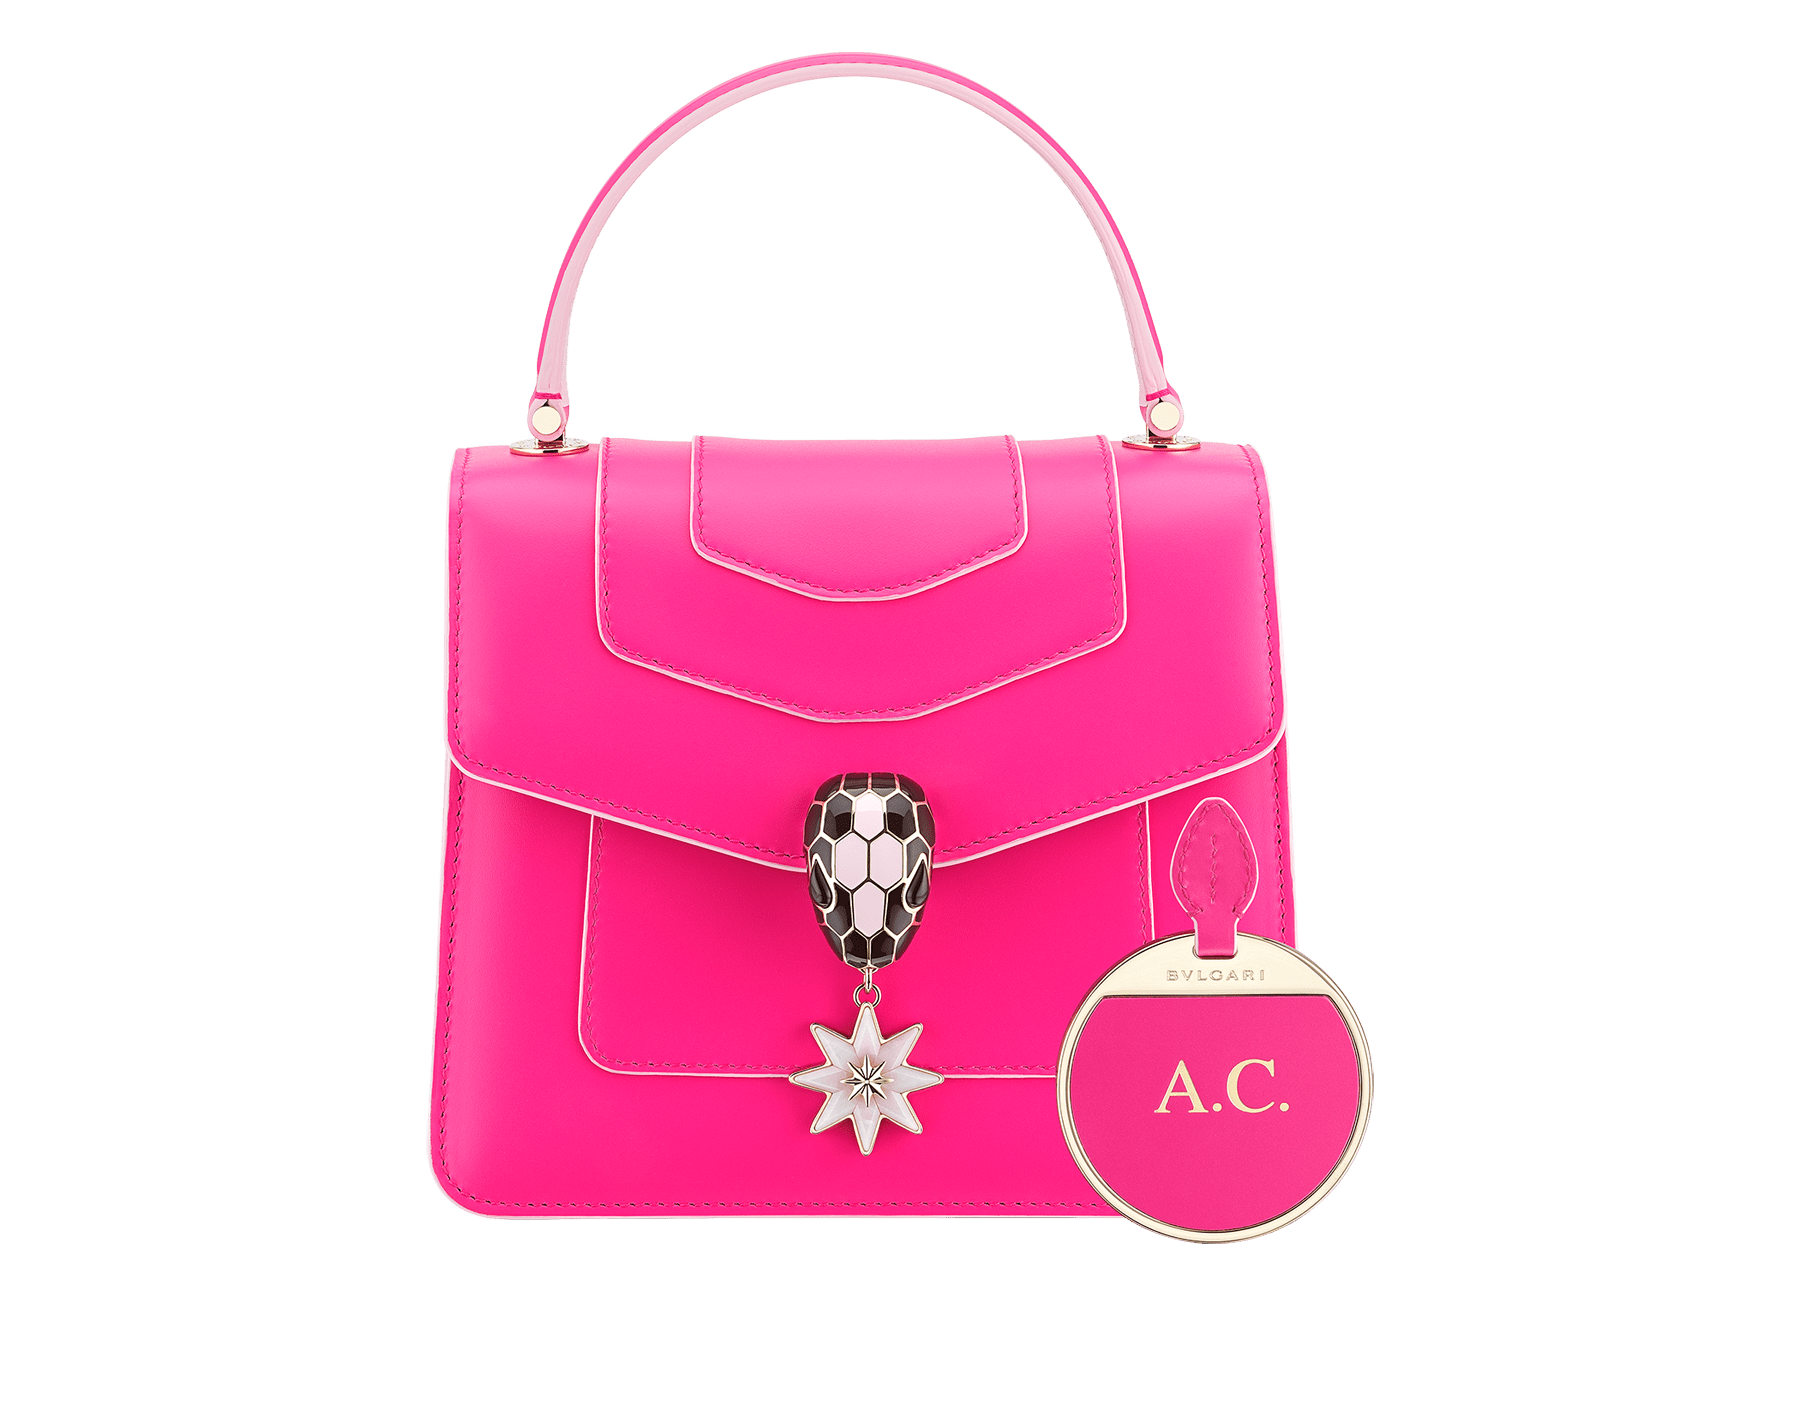 Serpenti Forever Holiday Season crossbody bag in flash amethyst, rose quartz brushed metallic and rosa di francia calf leather. Snakehead closure in light gold plated brass embellished with black and sakura pink enamel, black onyx eyes and a pink opal eight-pointed star charm. 289373 image 3